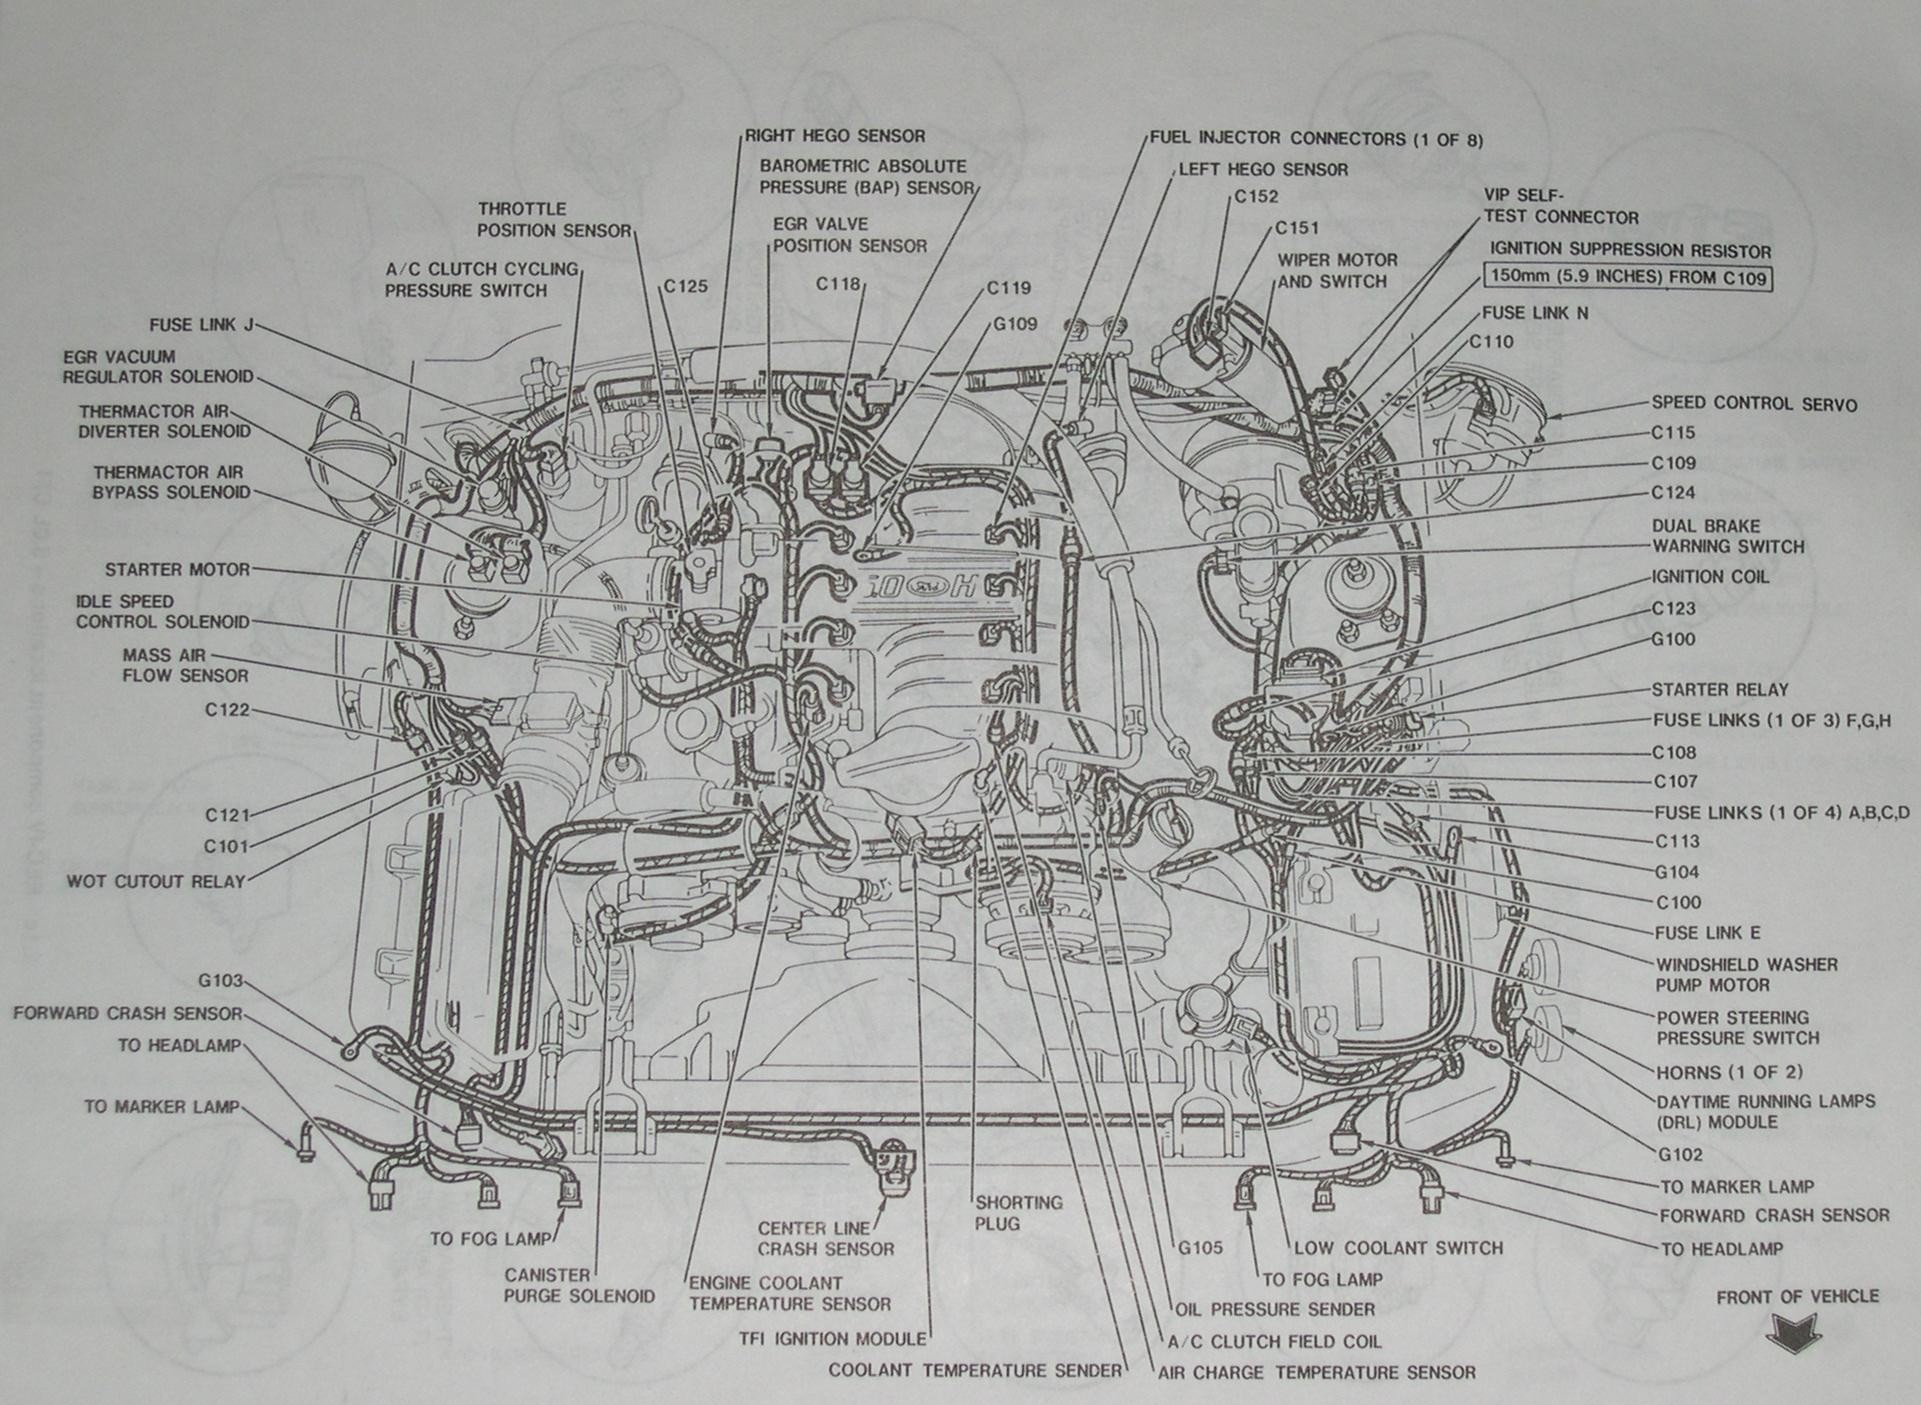 2002 ford Mustang Engine Diagram 2007 ford Mustang Wiring Diagram Wiring Diagram Of 2002 ford Mustang Engine Diagram